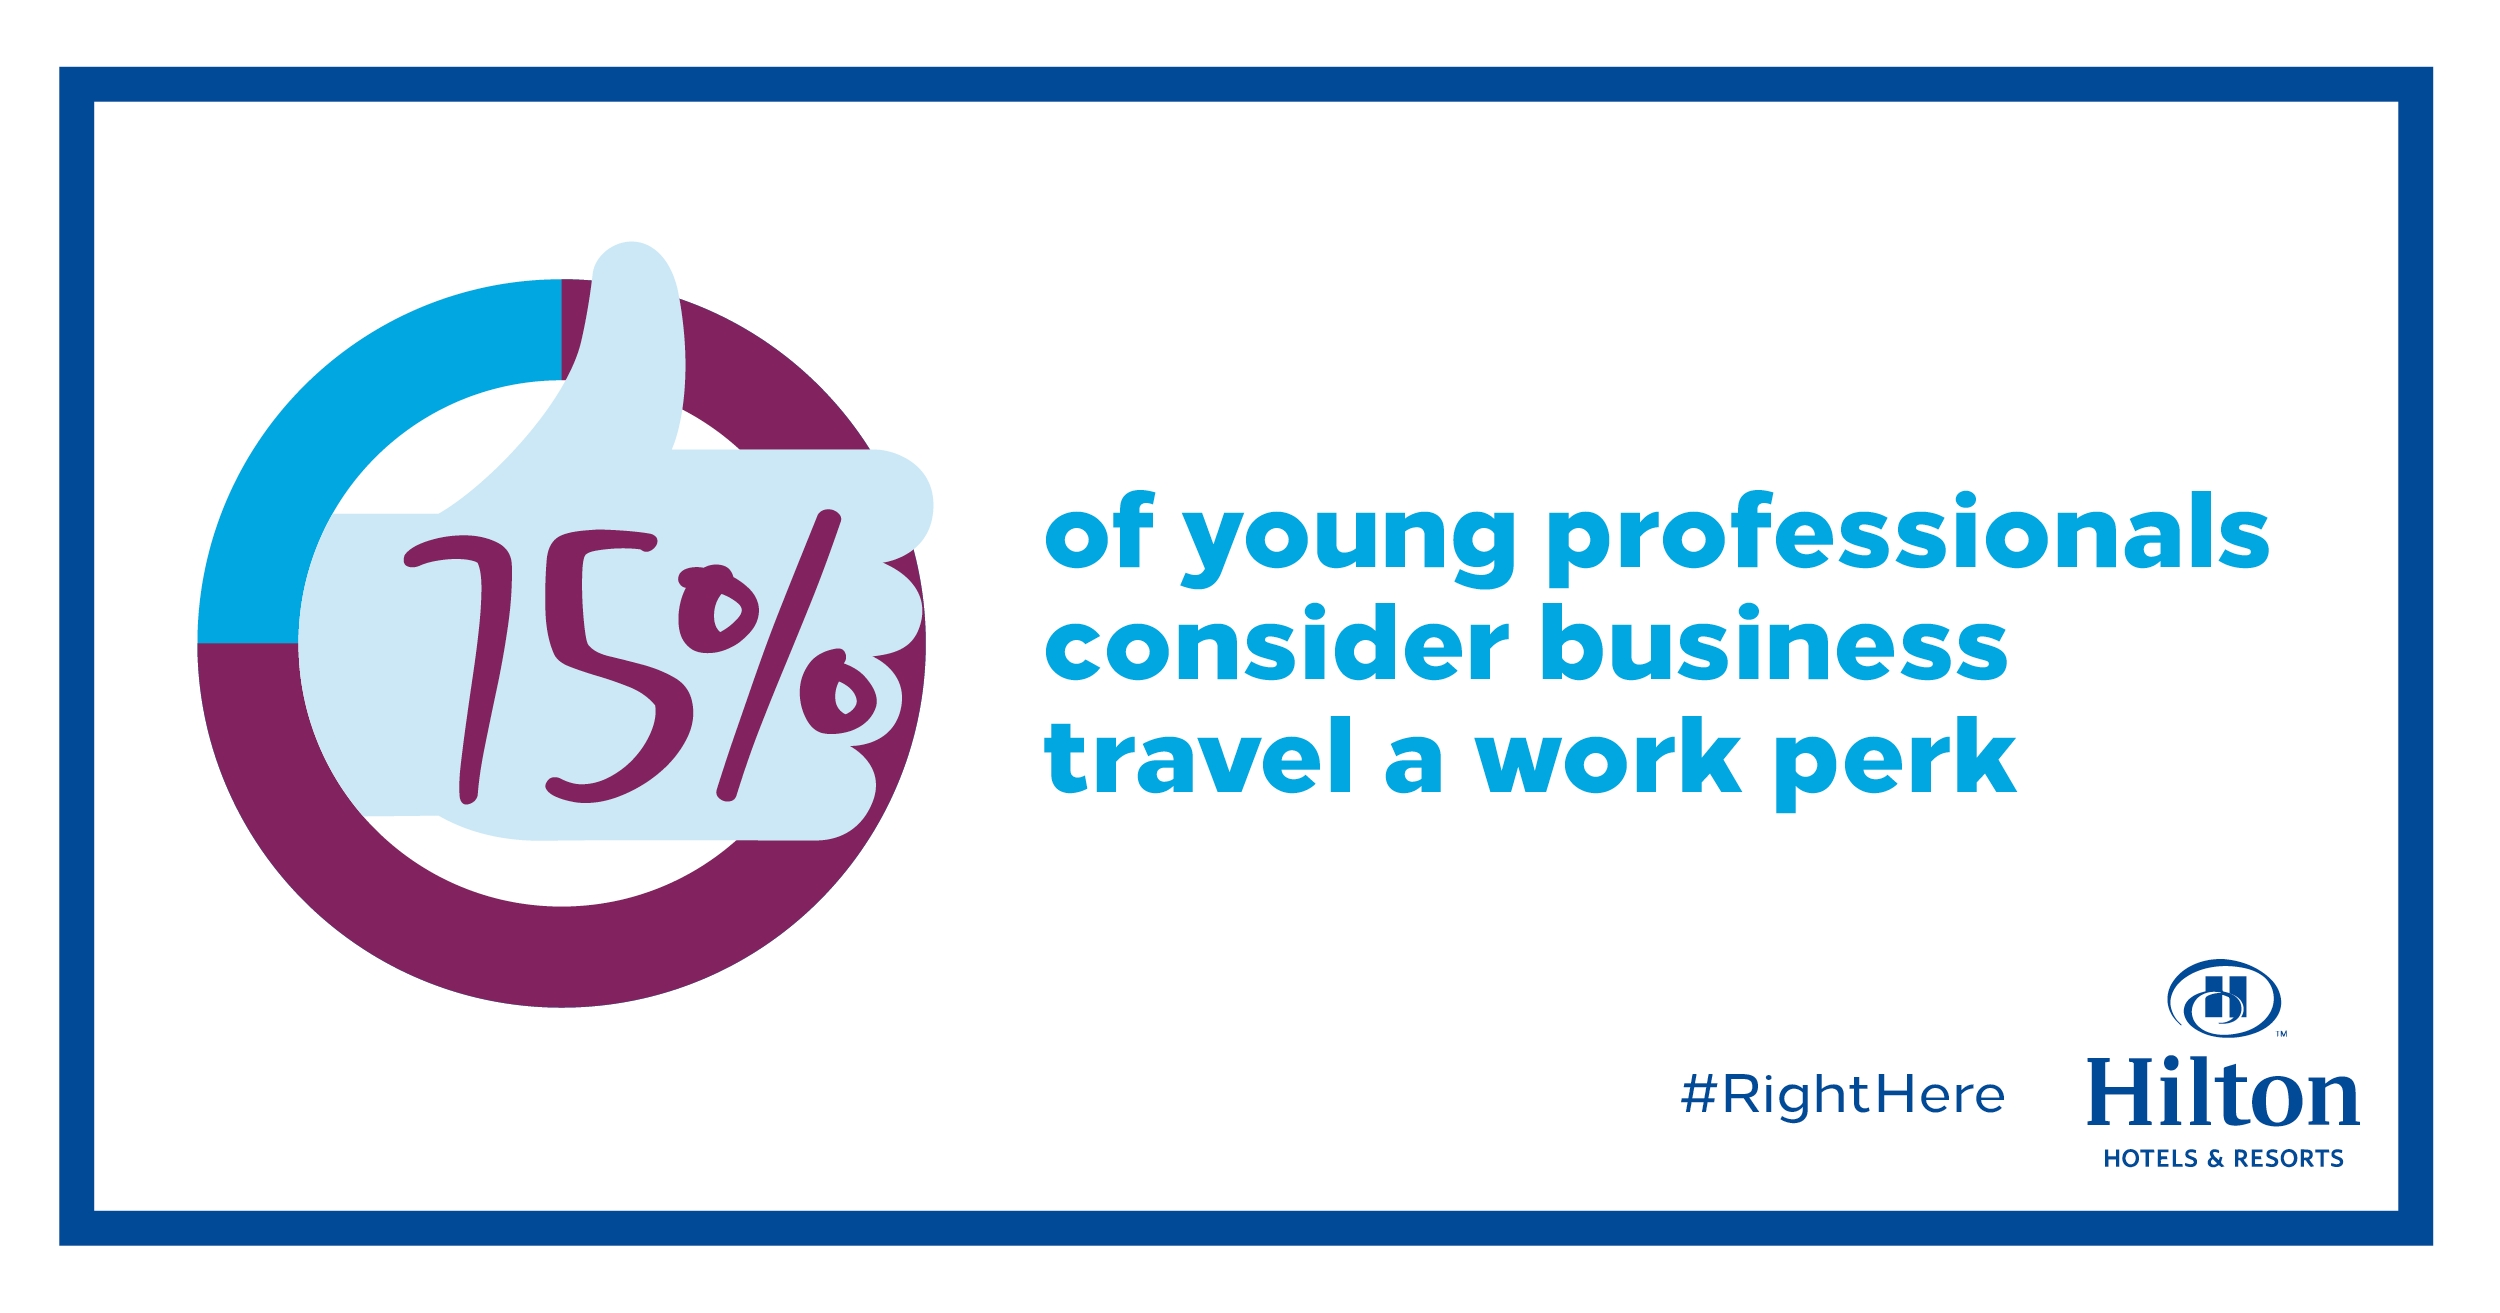 New Research Reveals Ultimate #WorkPerk for Young Professionals ...